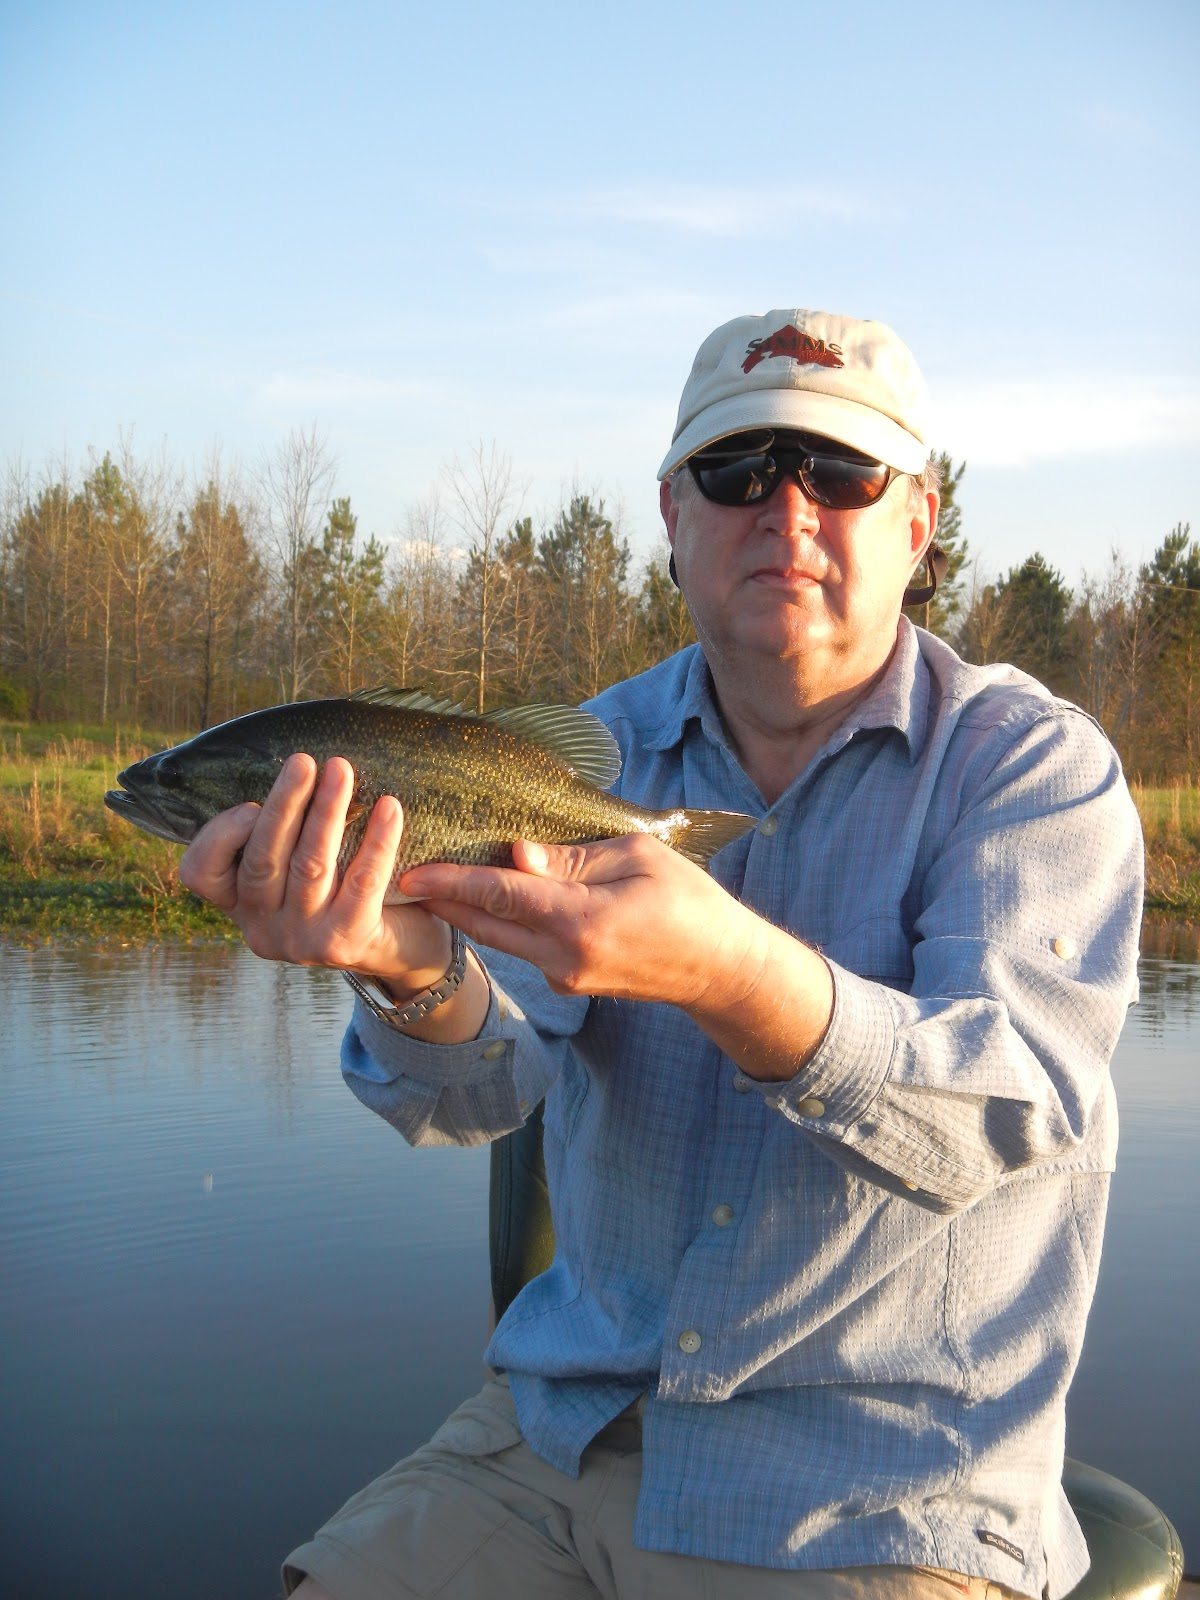 Fish spotter alabama fly fishing trip for Trout fishing in alabama